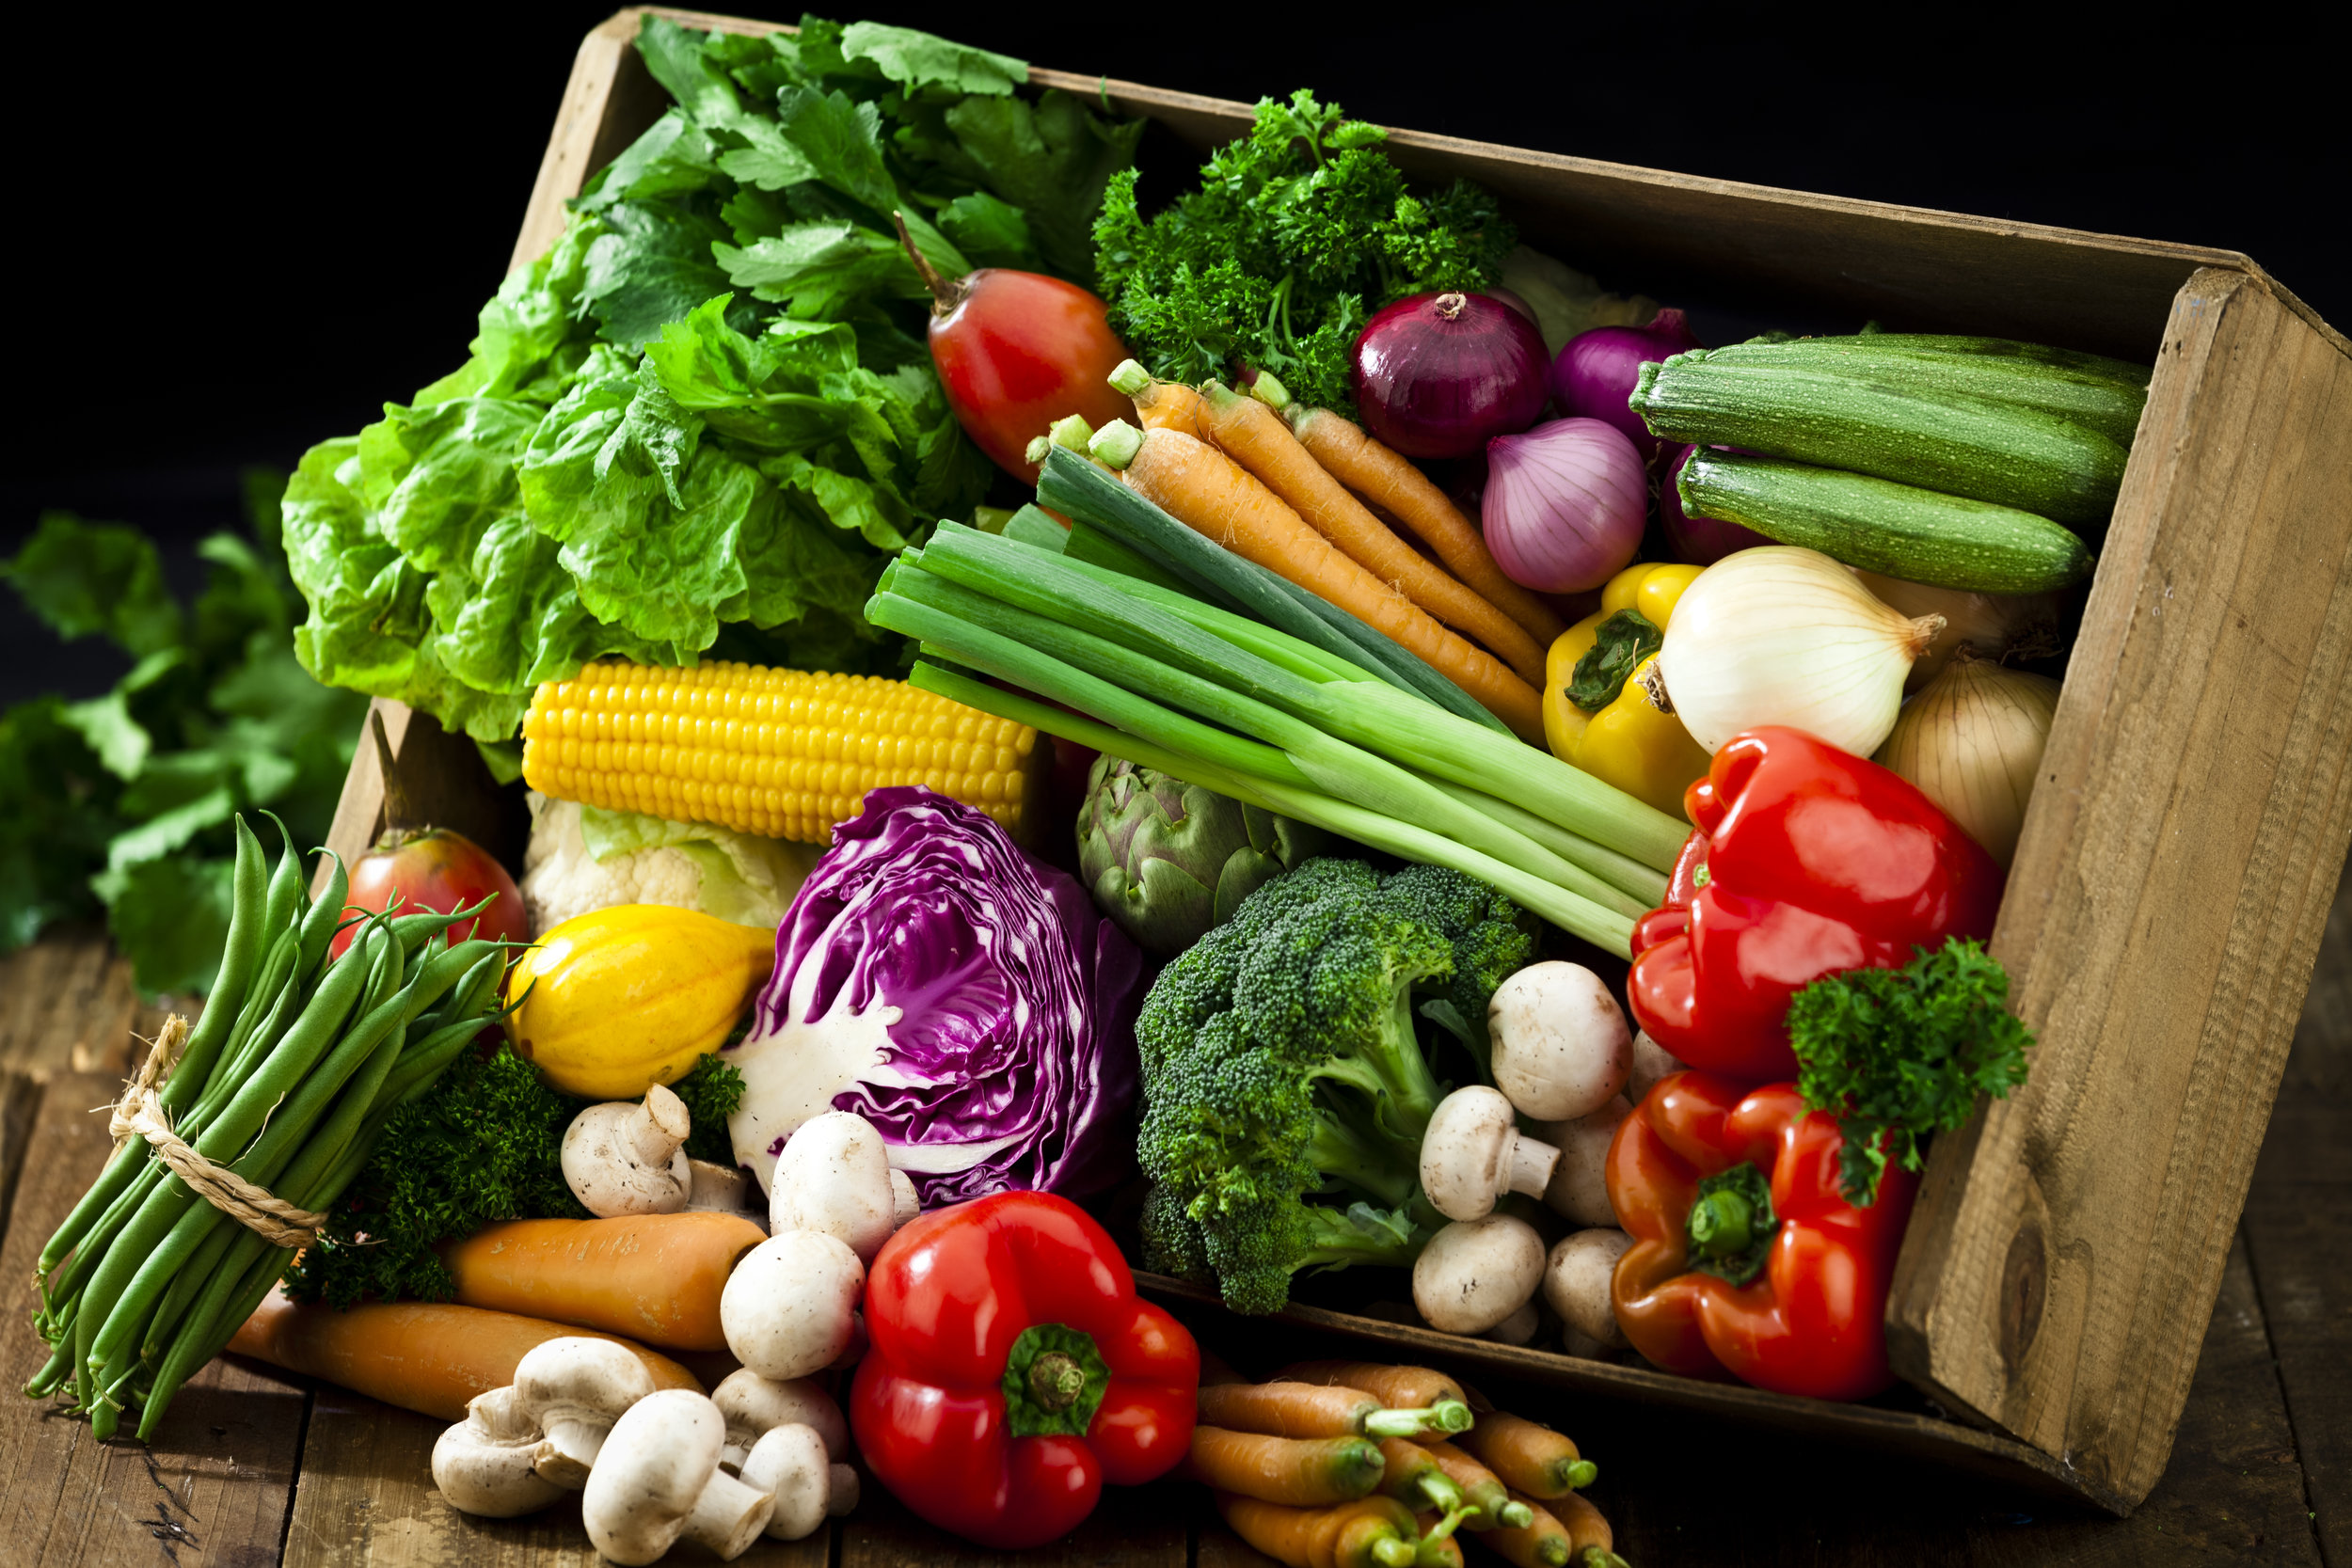 Wooden-crate-filled-with-fresh-organic-vegetables-484152000_5616x3744.jpeg